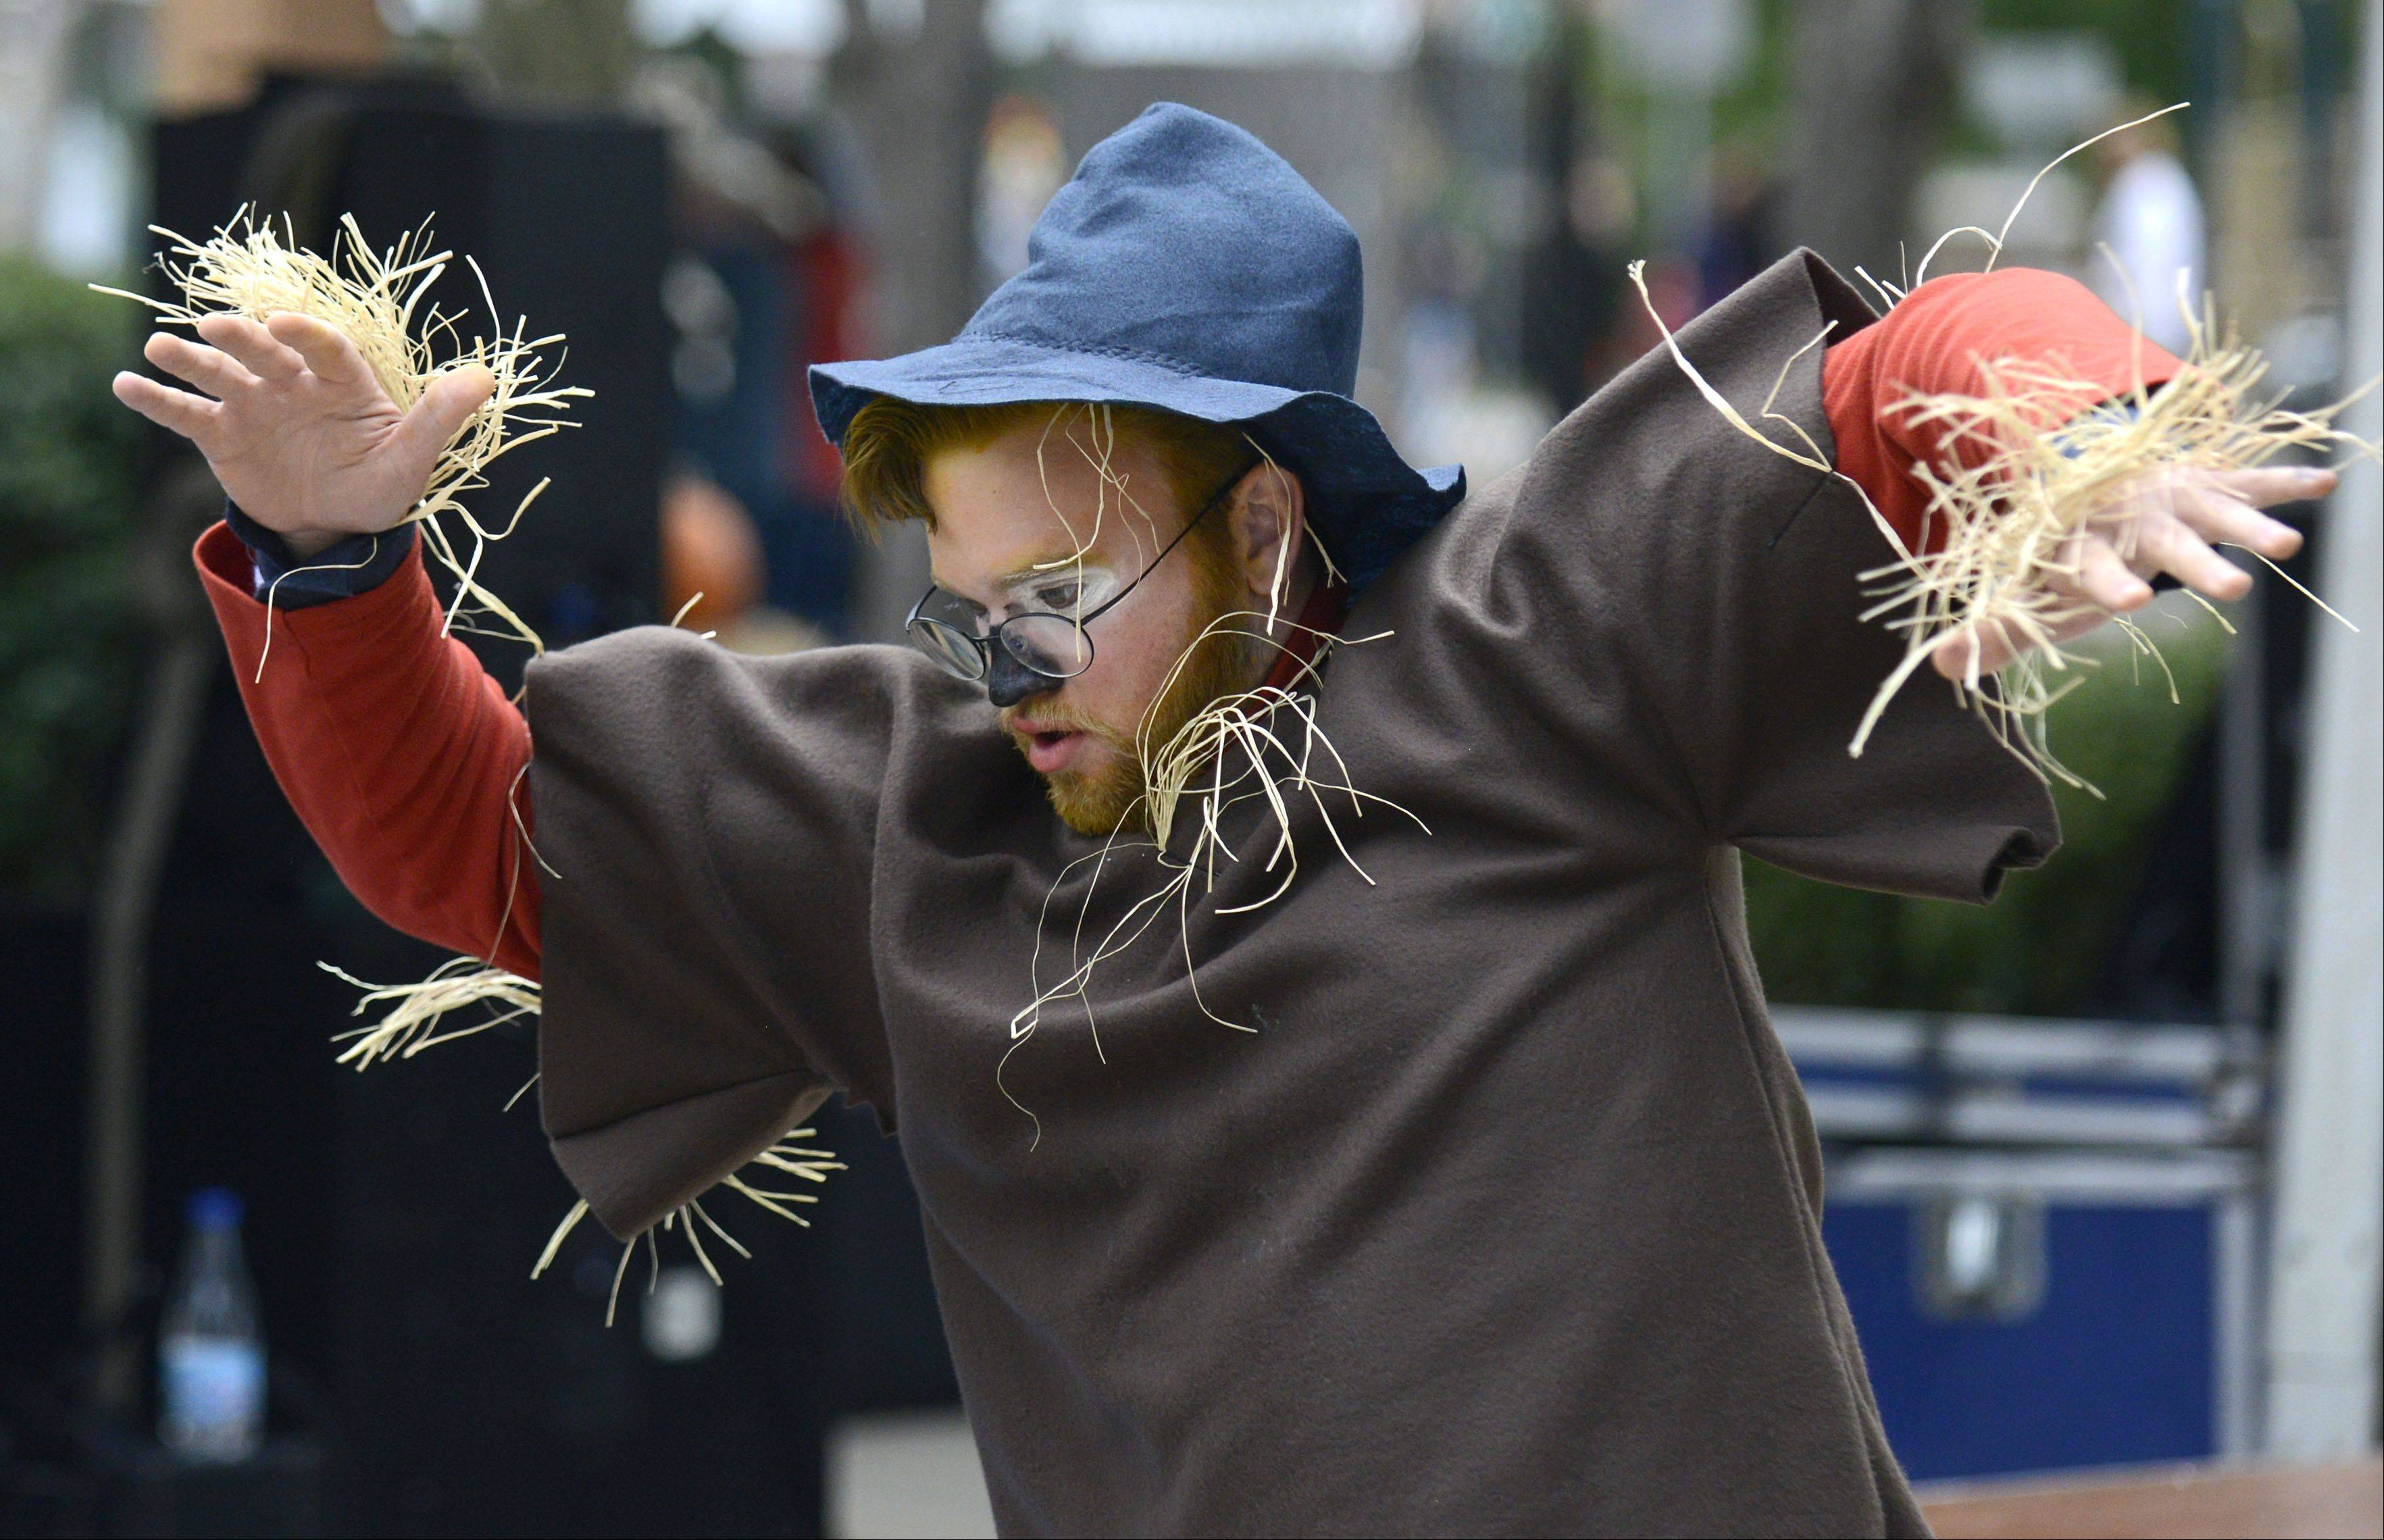 "Steven Sledzinski of Geneva, dressed as Chuck the Scarecrow Fest mascot, dances to live music in the square at Lincoln Park in St. Charles on Saturday. Chuck and his scarecrow girlfriend Char are characters in the Greater St. Charles Convention and Visitors Bureau's blog ""Chuck and Char: A Scarecrow's Life,"" which has been creating buzz about the festival the last few months."